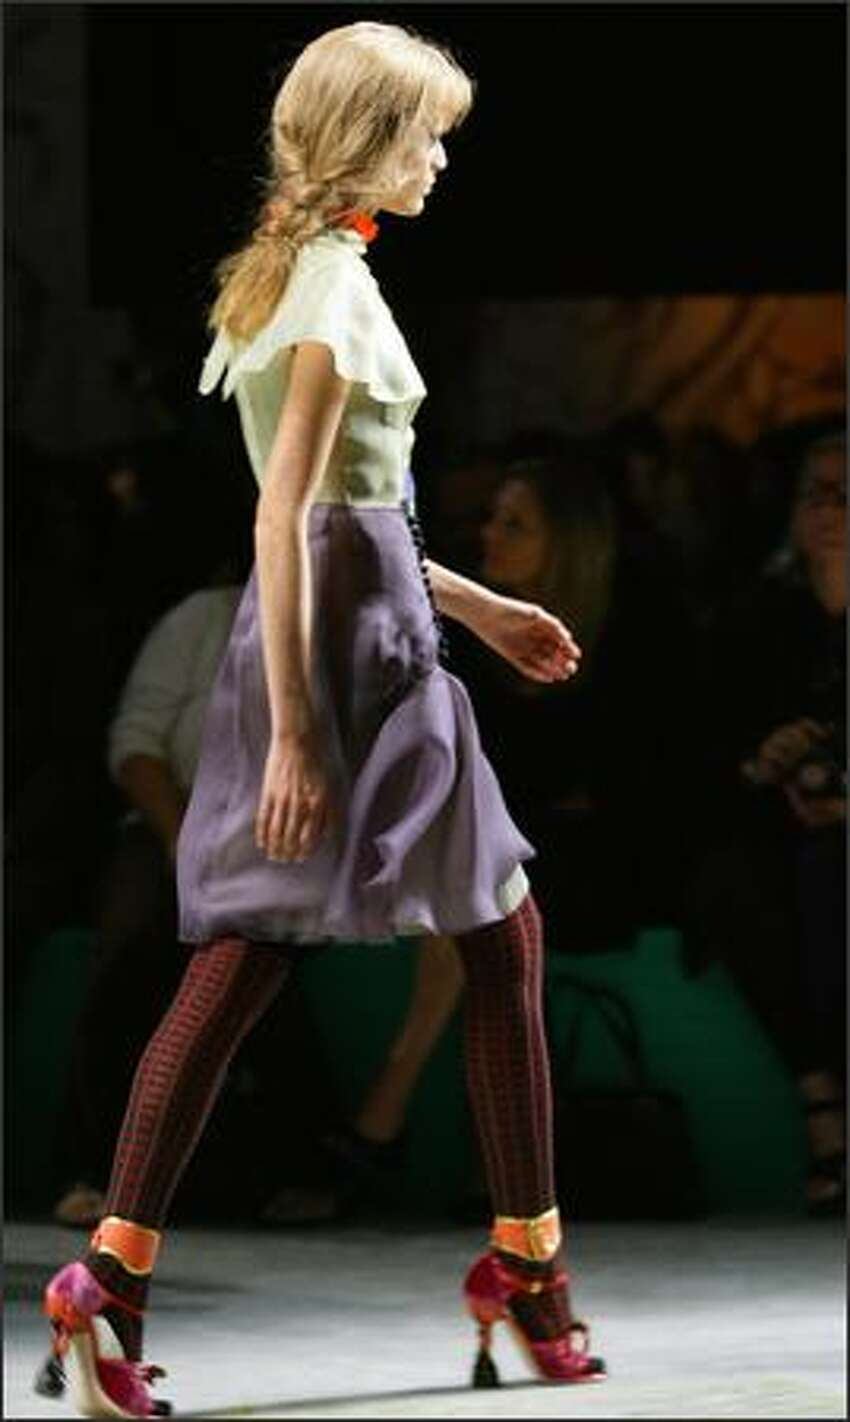 A model presents a creation by Italian designer Miuccia Prada during the spring/summer 2008 collections of the Milan ready-to-wear fashion shows.